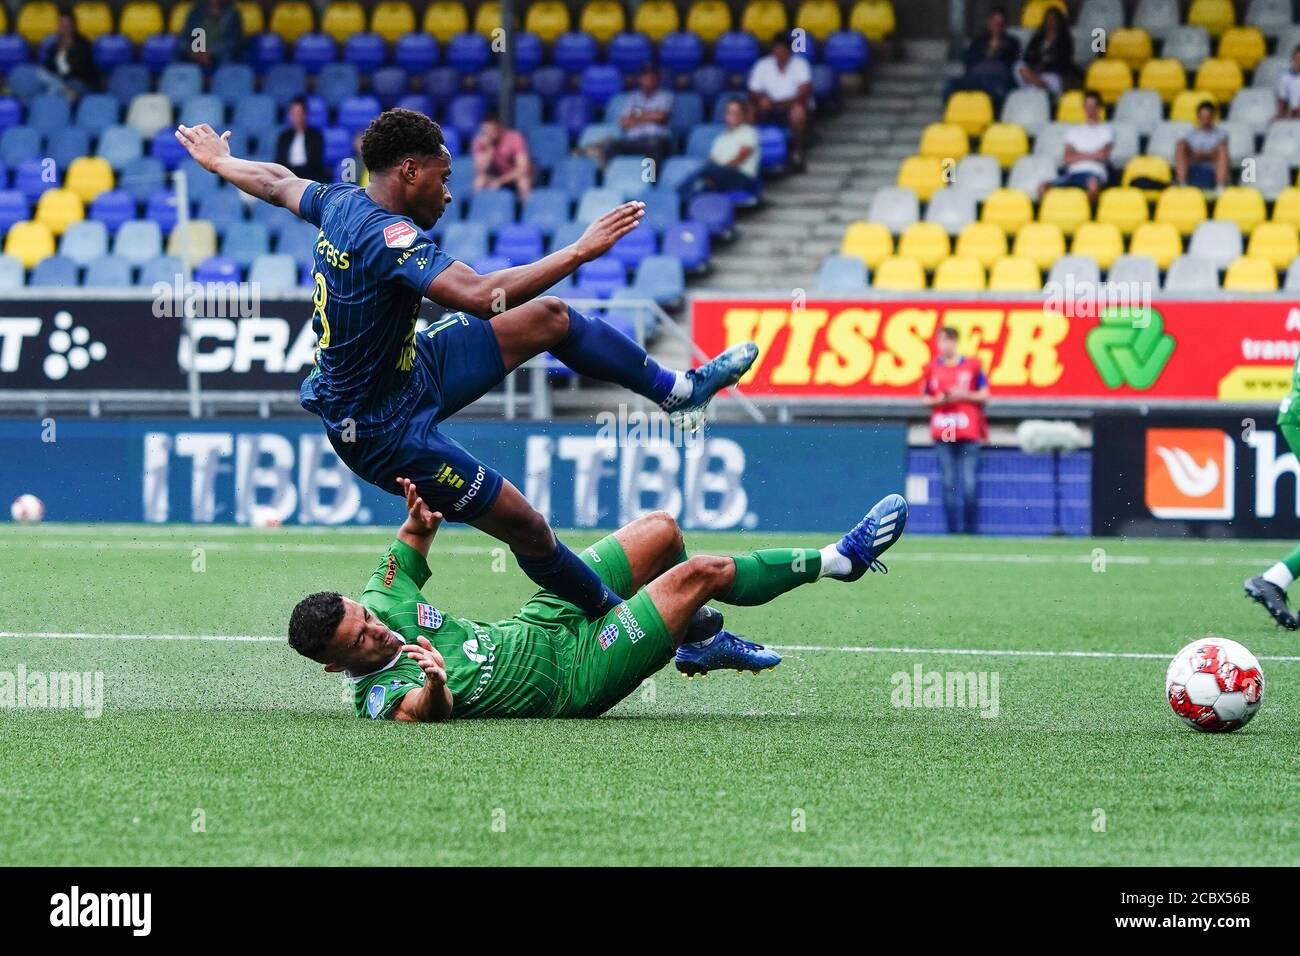 Leeuwarden Netherlands August 1 Mustafa Saymak Of Pec Zwolle Stanley Akoy Of Sc Cambuur Seen During The Pre Season Match Sc Cambuur V Pec Zwolle Stock Photo Alamy